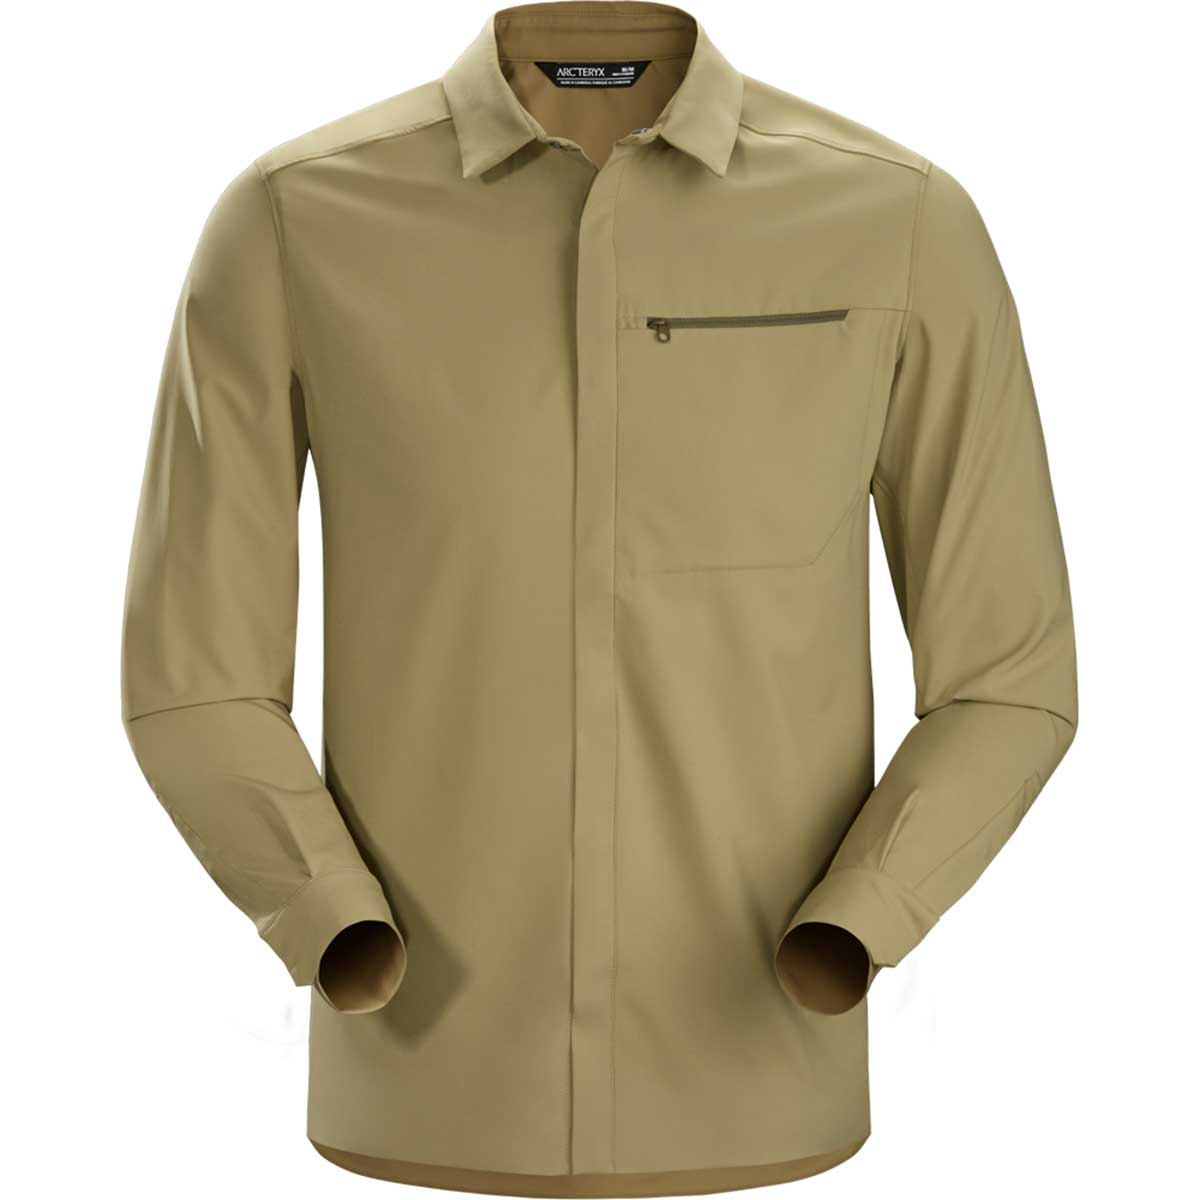 Arcteryx men's Skyline Long Sleeve Shirt in Taxus front view